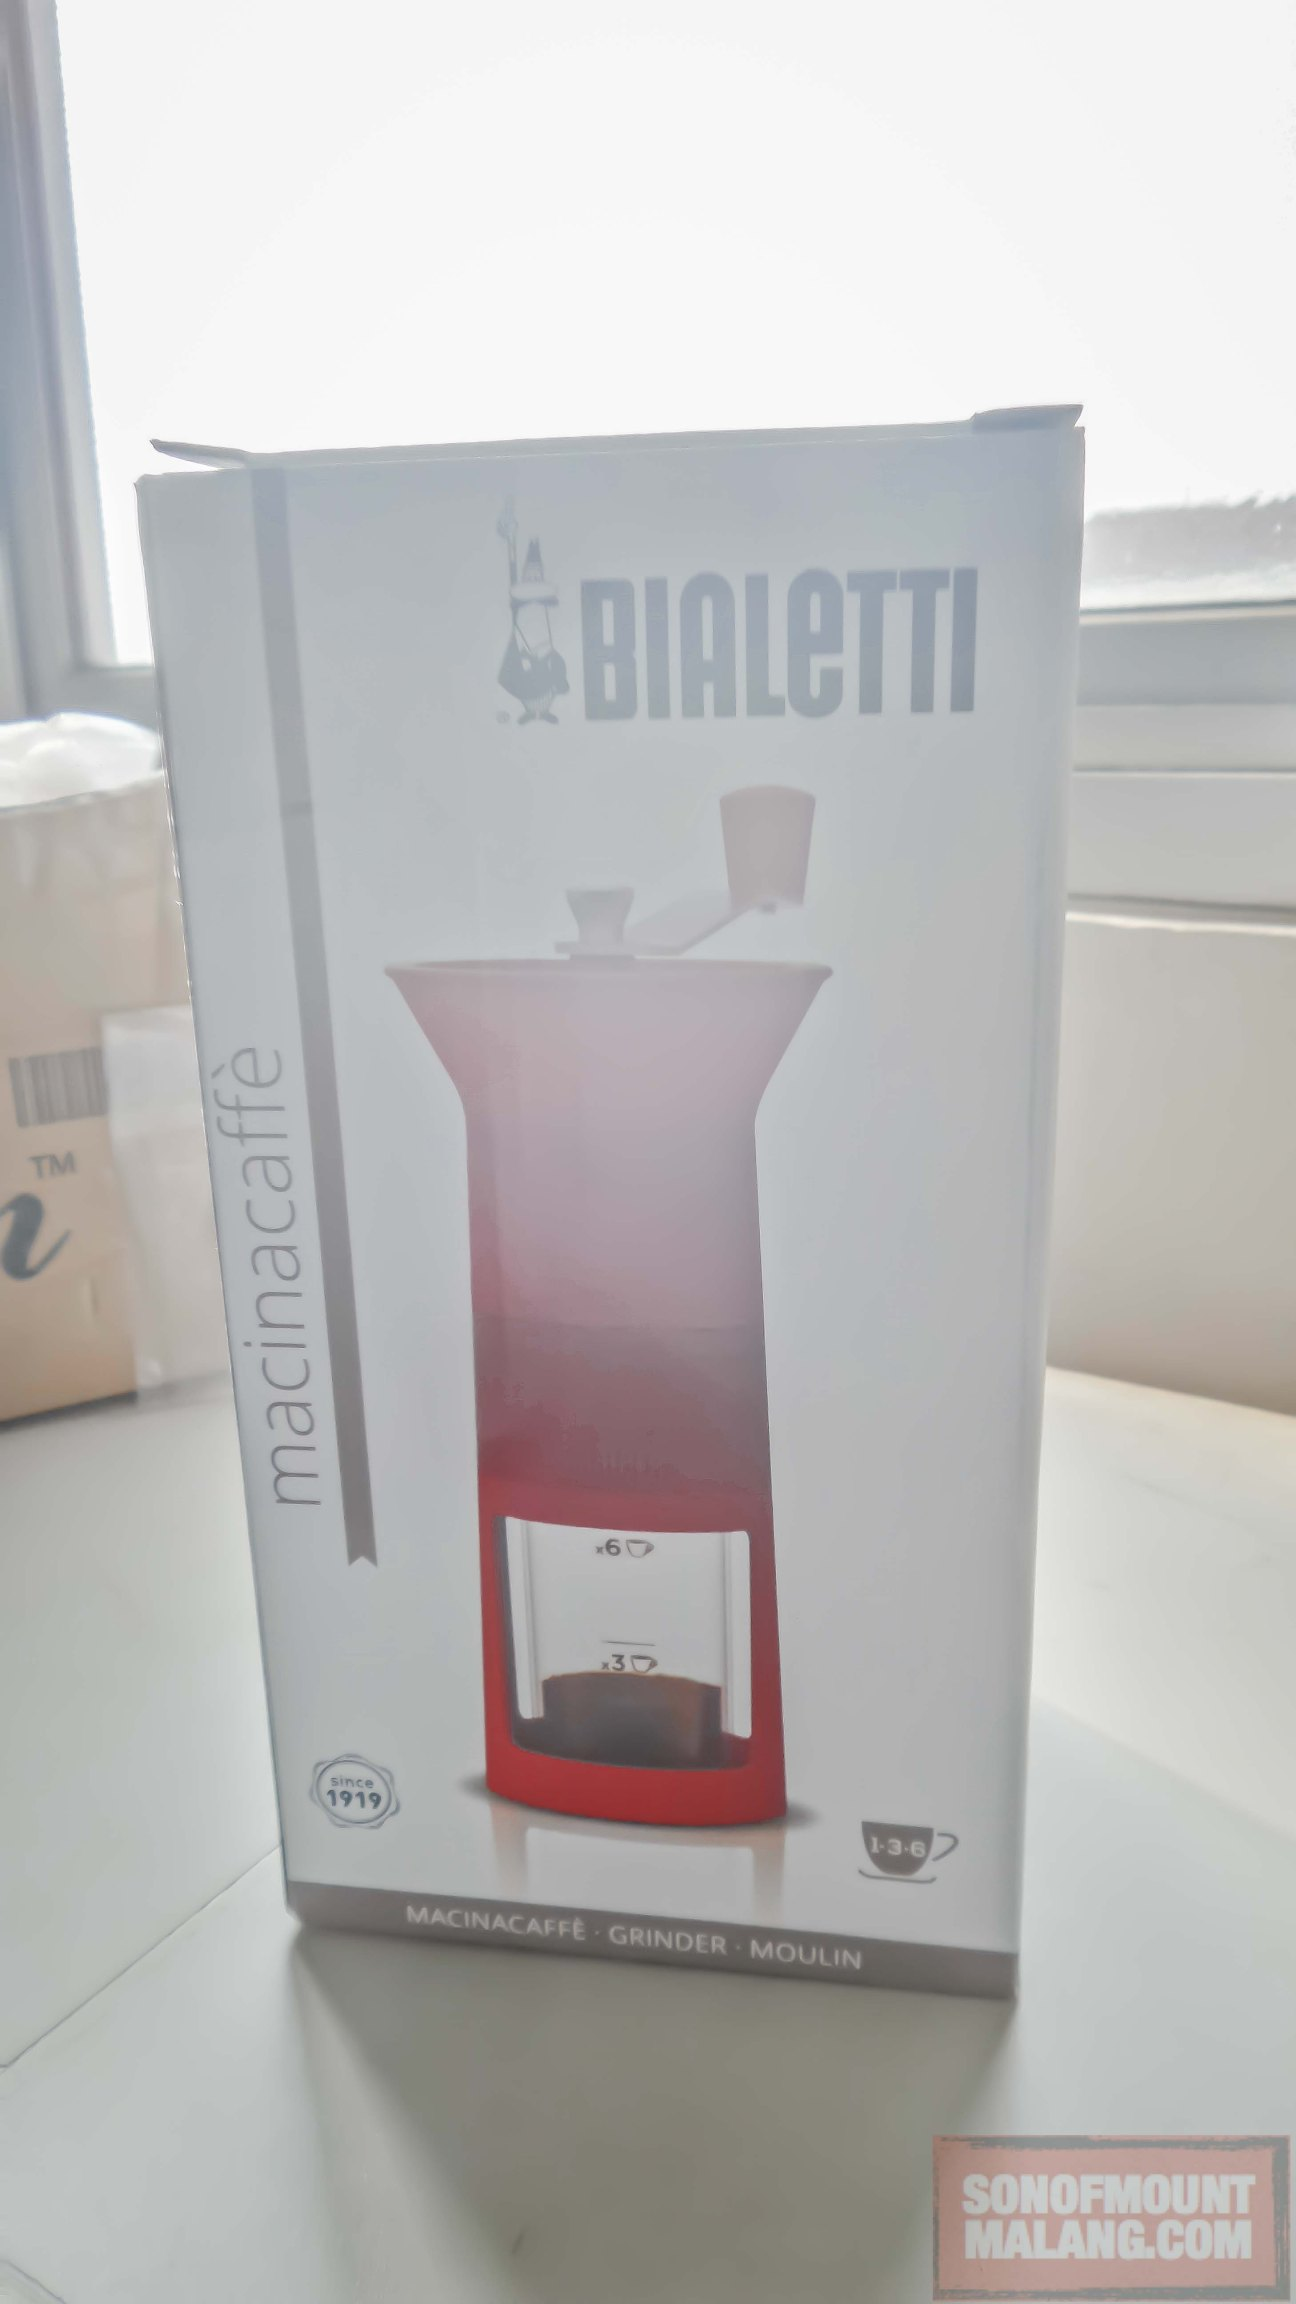 Unboxing Bialetti Macinacaffe.